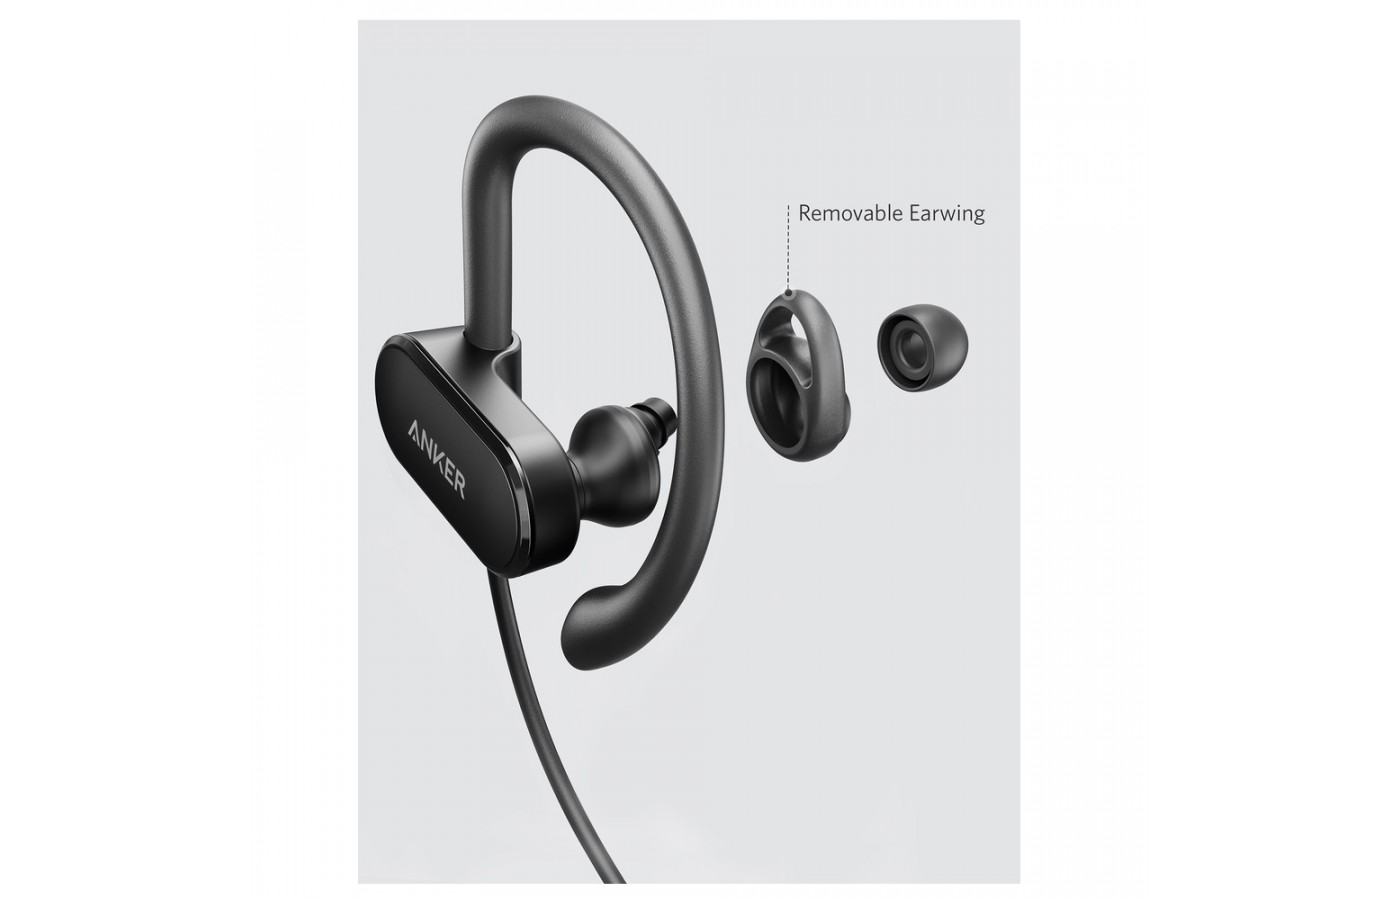 The Anker SoundBuds Curve have a removable earwig for cleaning and adjustable comfort.